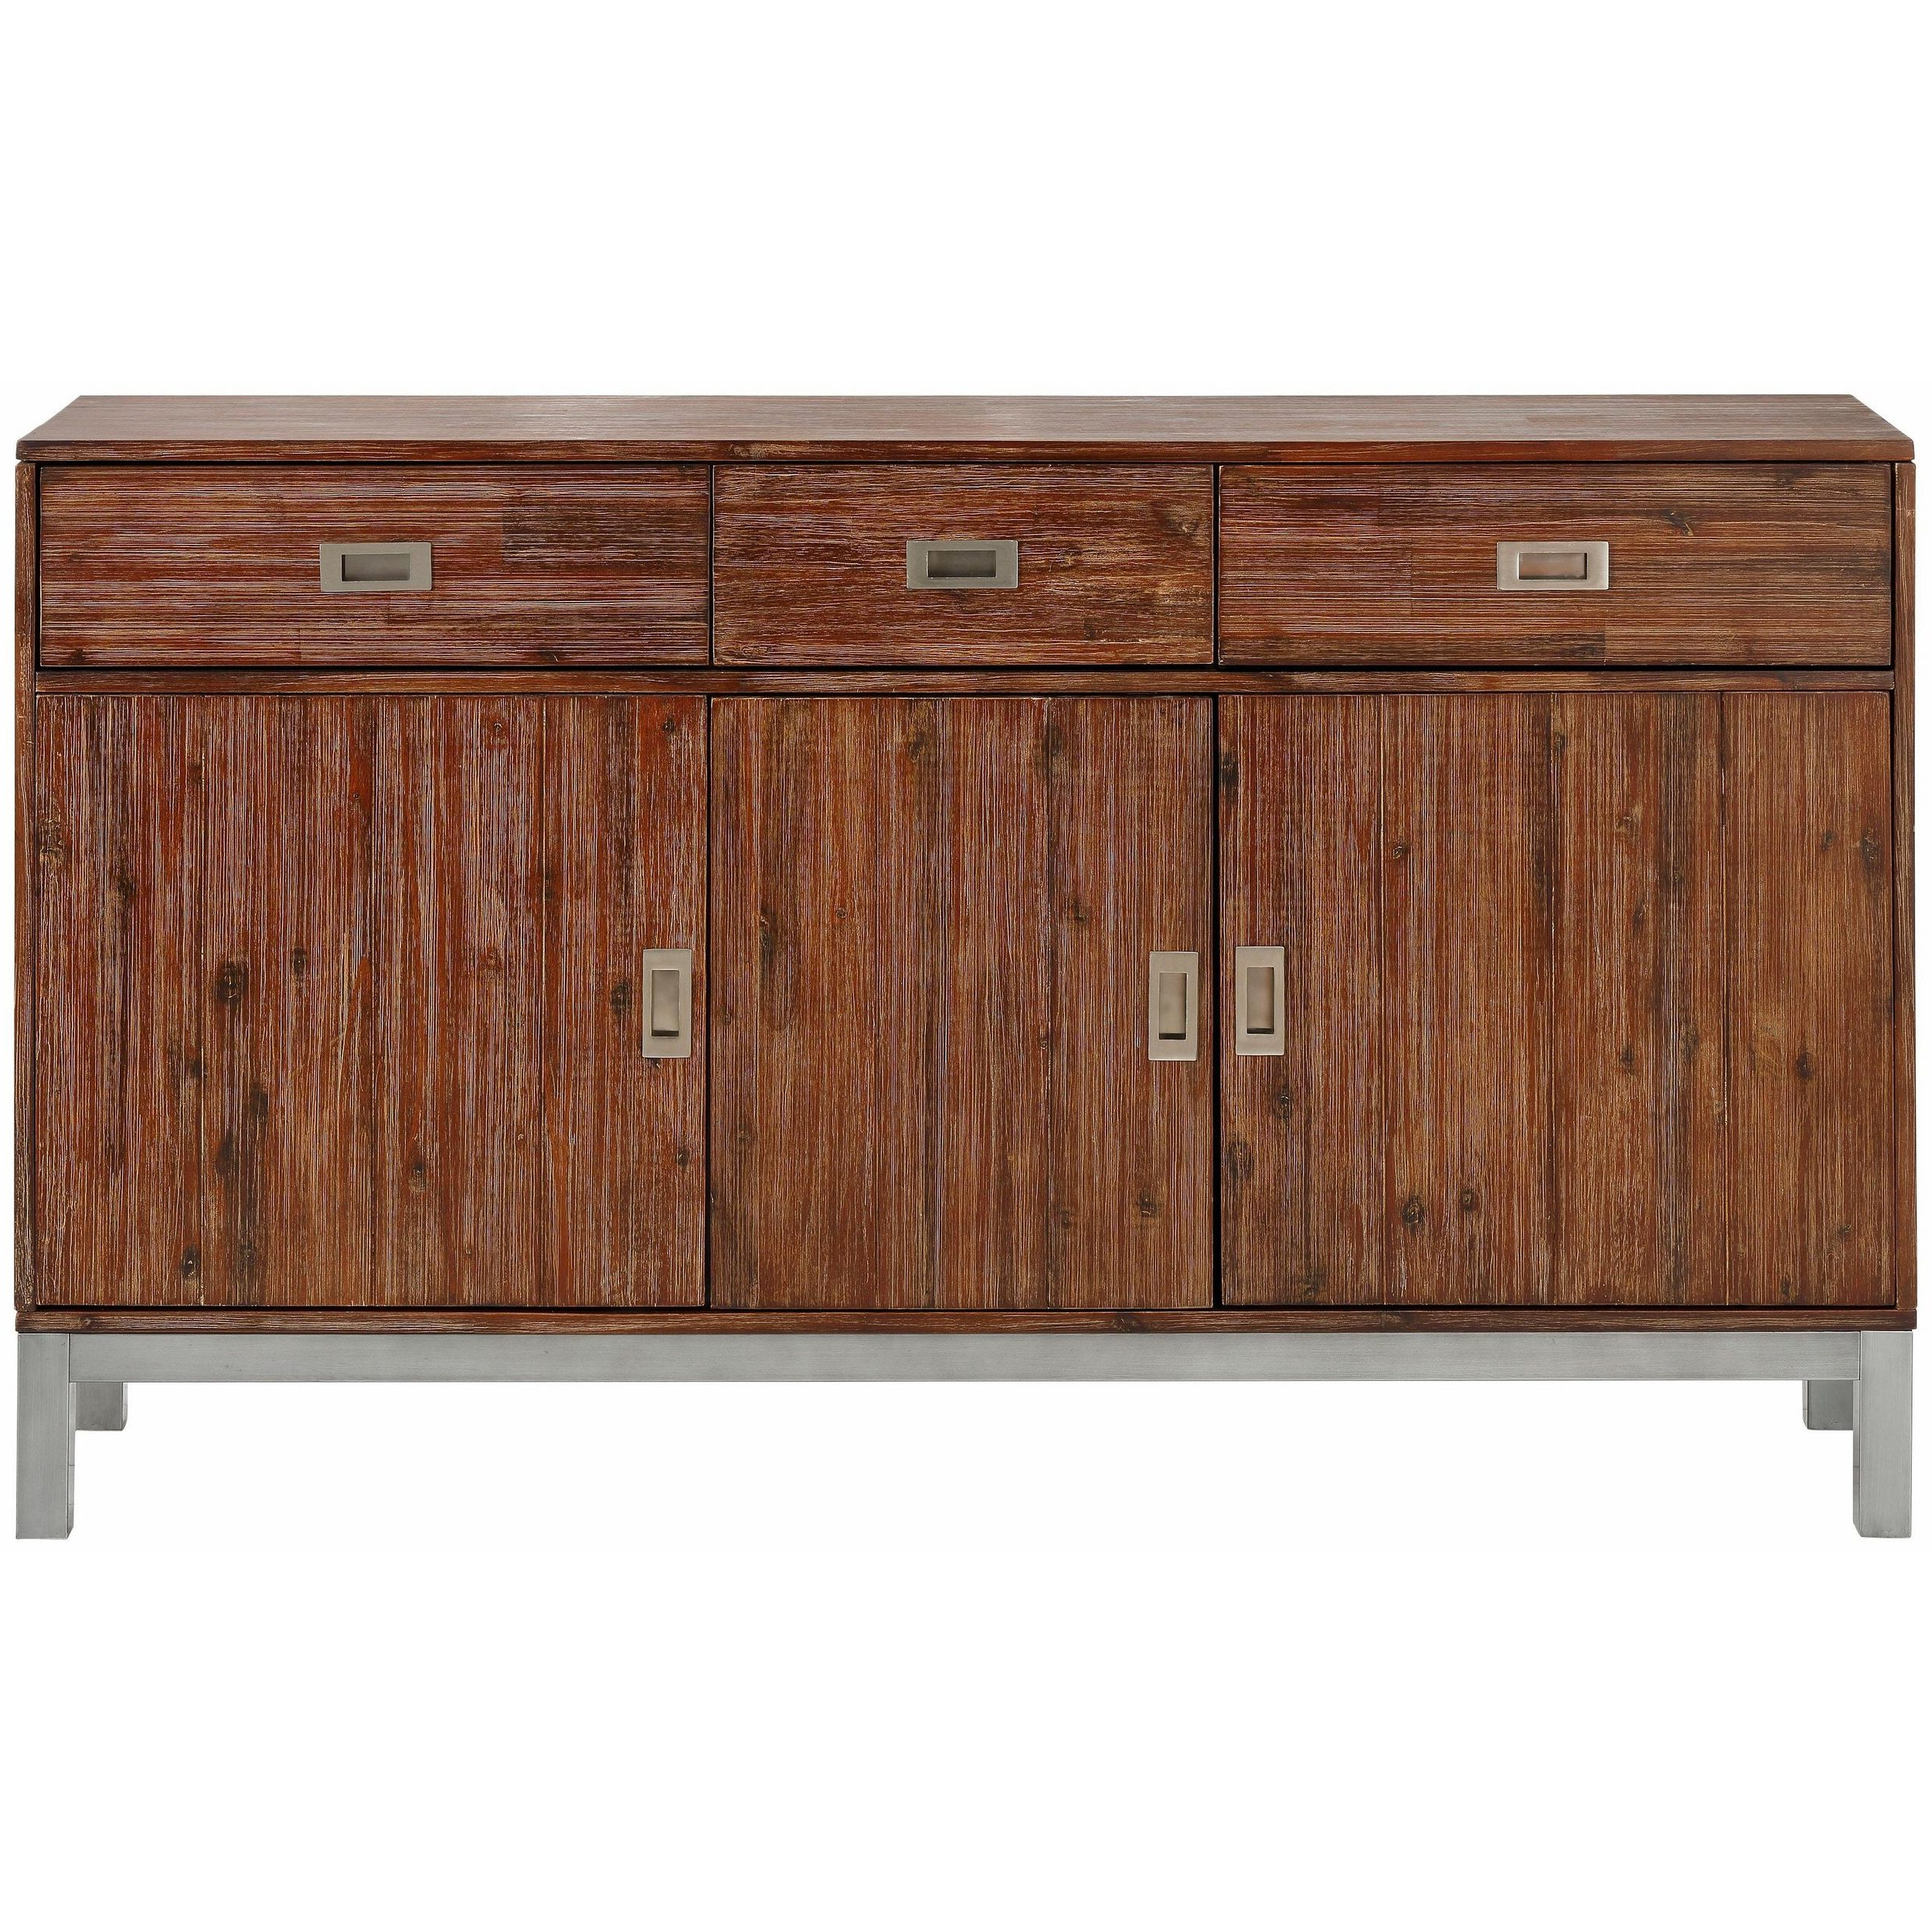 Shop Congo Acacia Wood And Metal Sideboard With 3 Doors And 3 With Current Acacia Wood 4 Door Sideboards (Gallery 2 of 20)